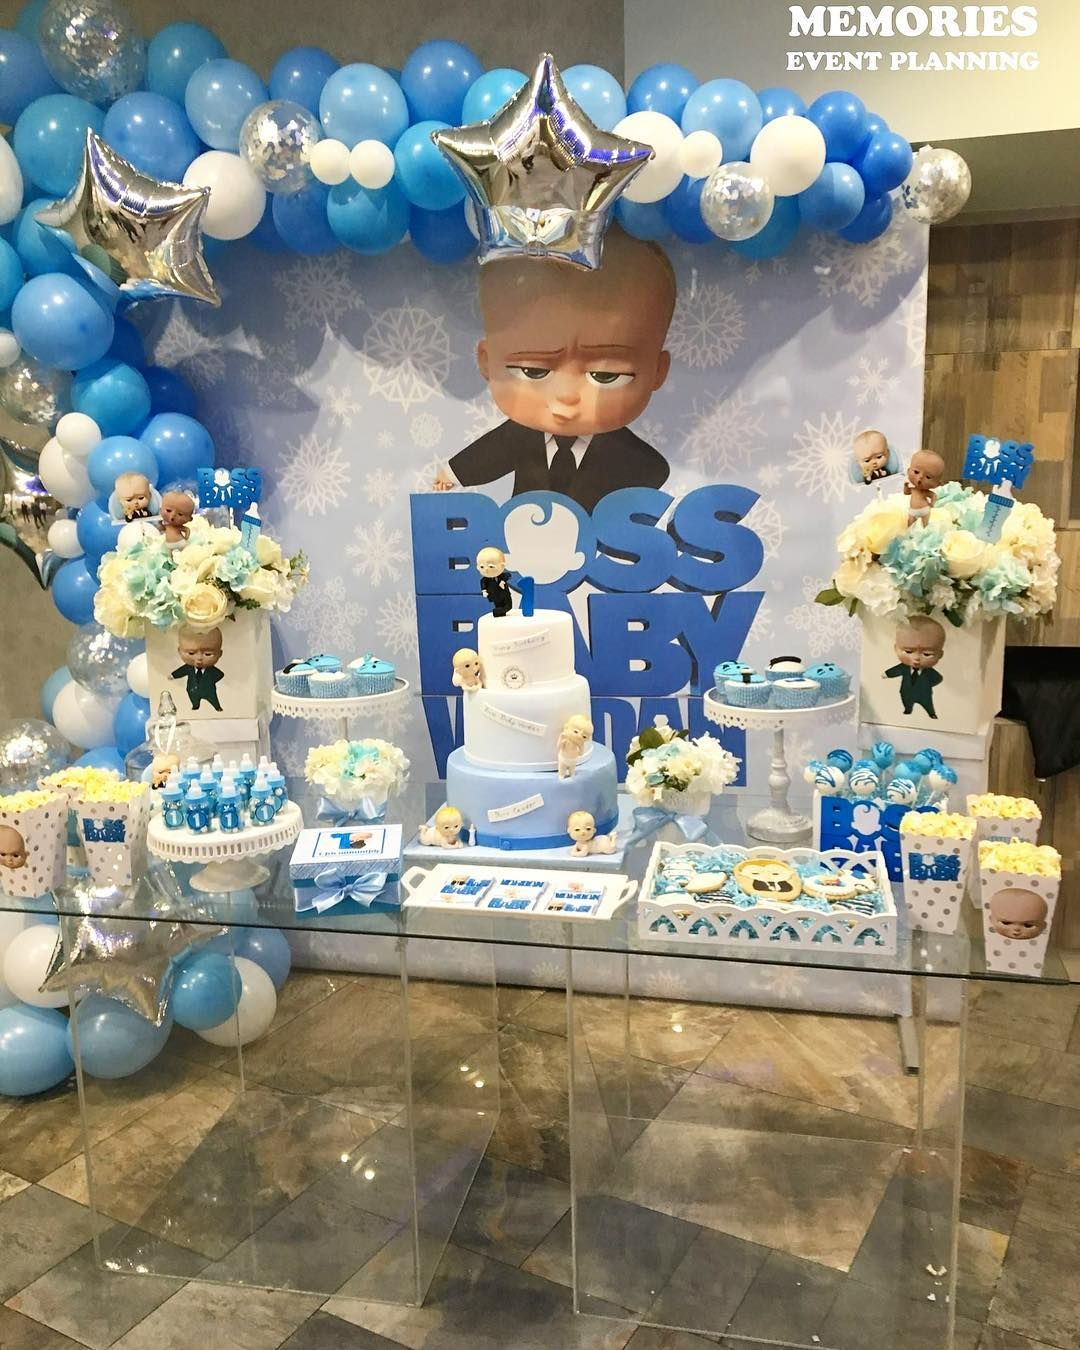 Pin On Boss Baby Party Theme Ideas